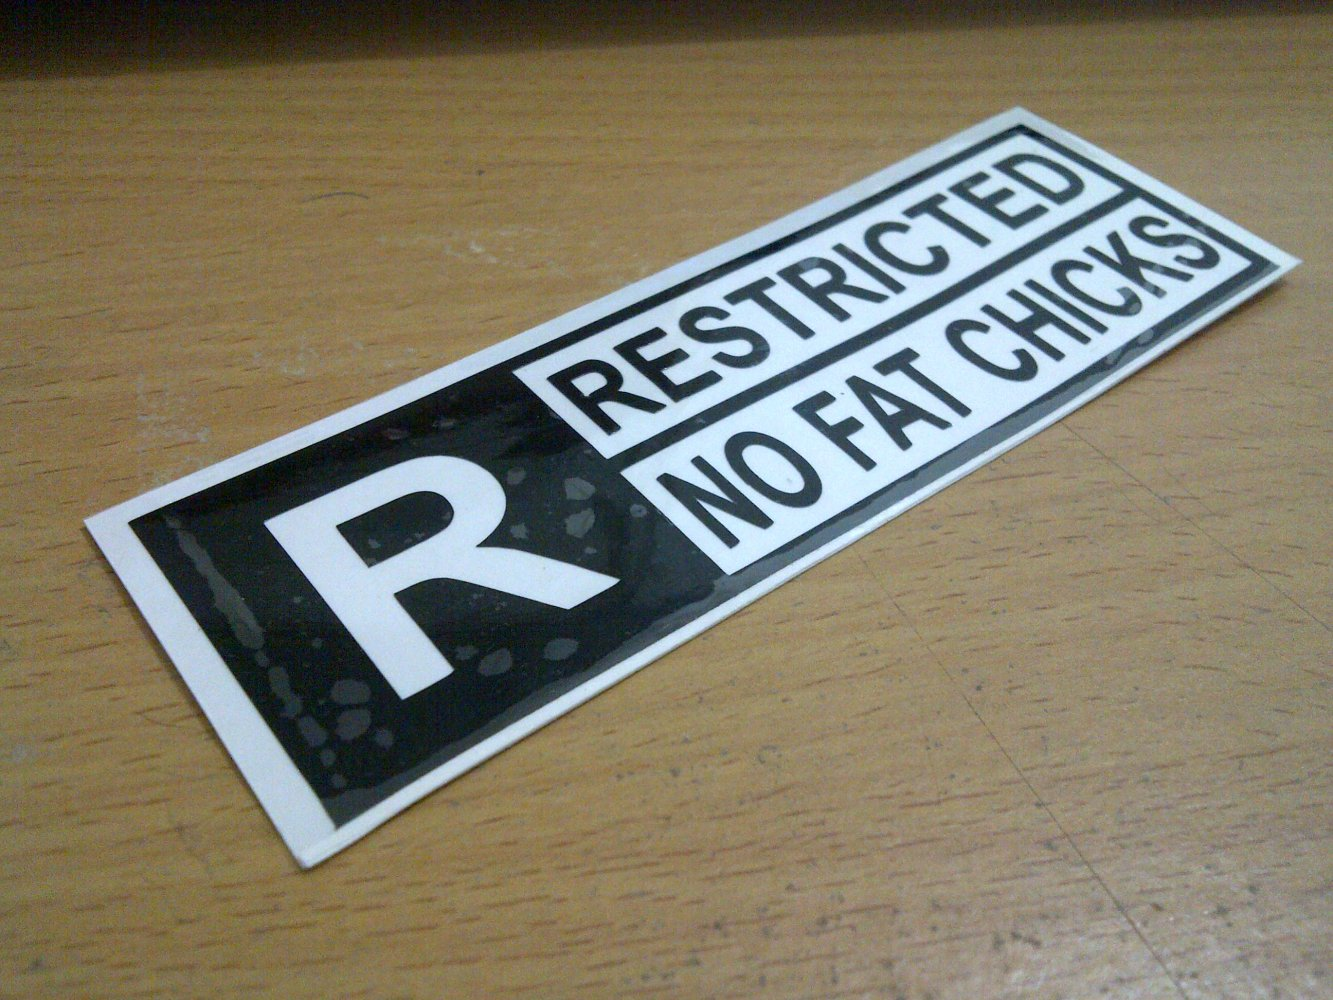 Jdm style sticker restricted fat chicks restricted fat chick 10x3cm 7rb